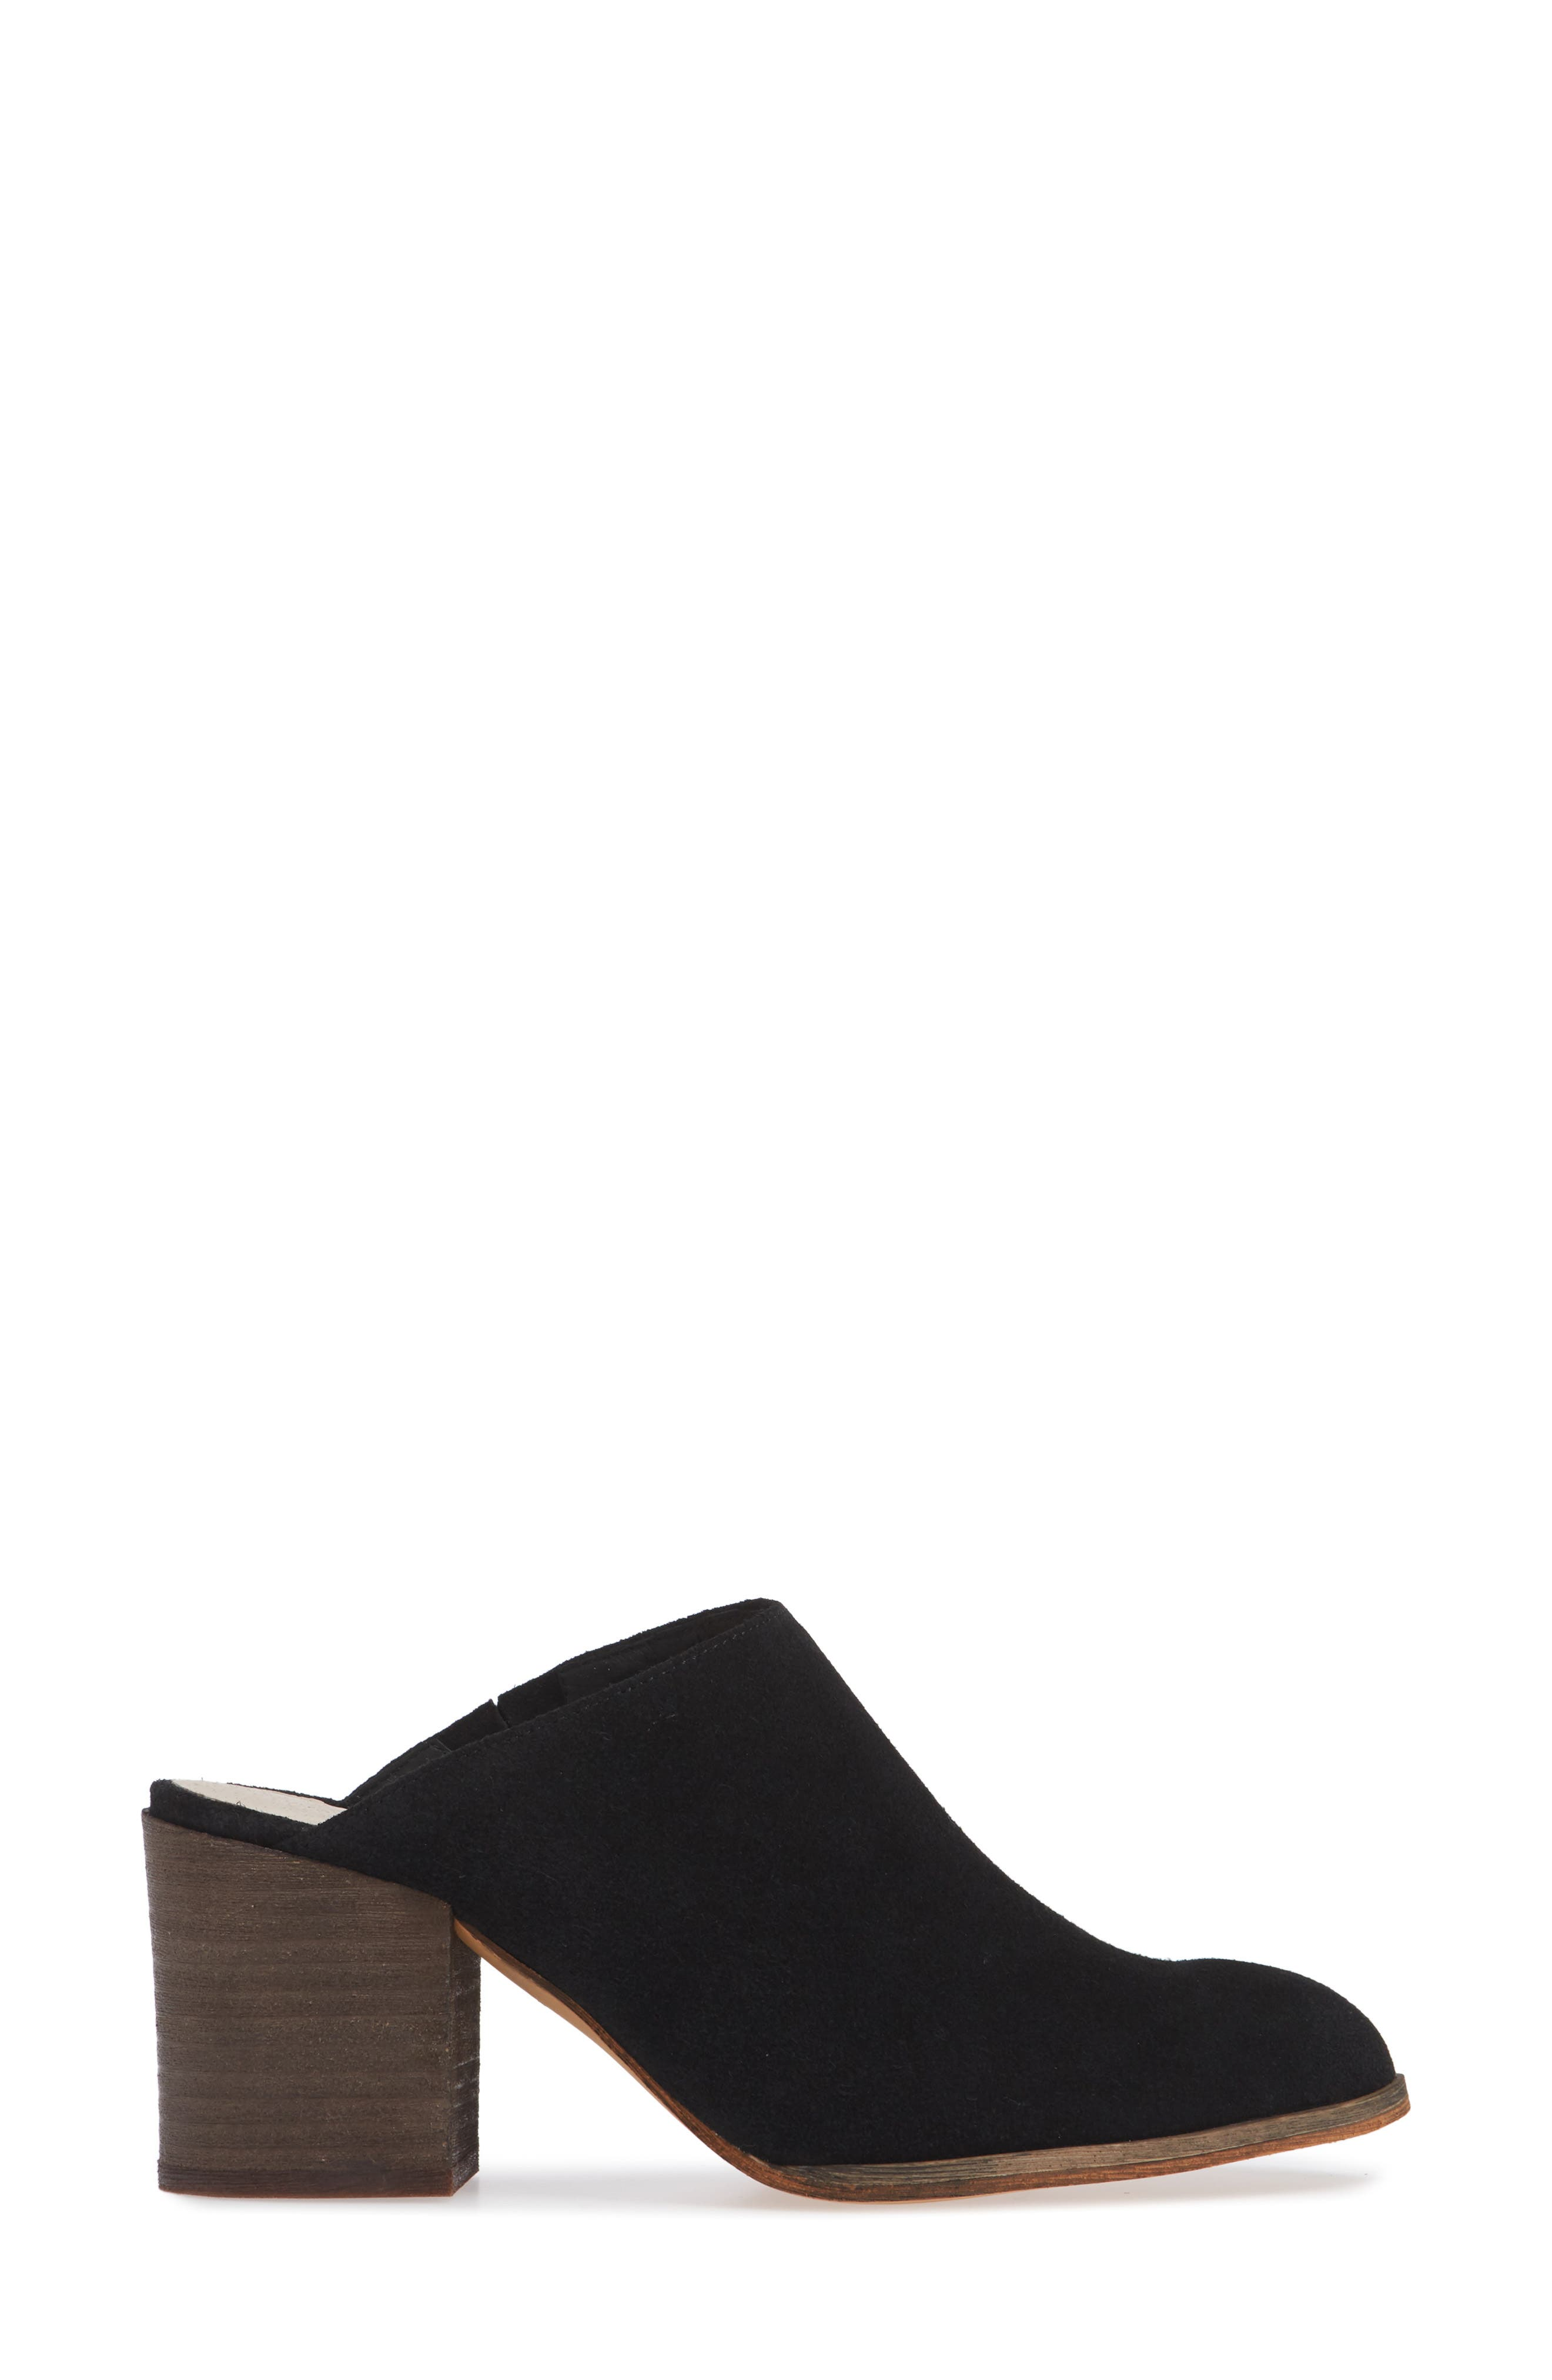 Miccah Mule,                             Alternate thumbnail 3, color,                             BLACK SUEDE